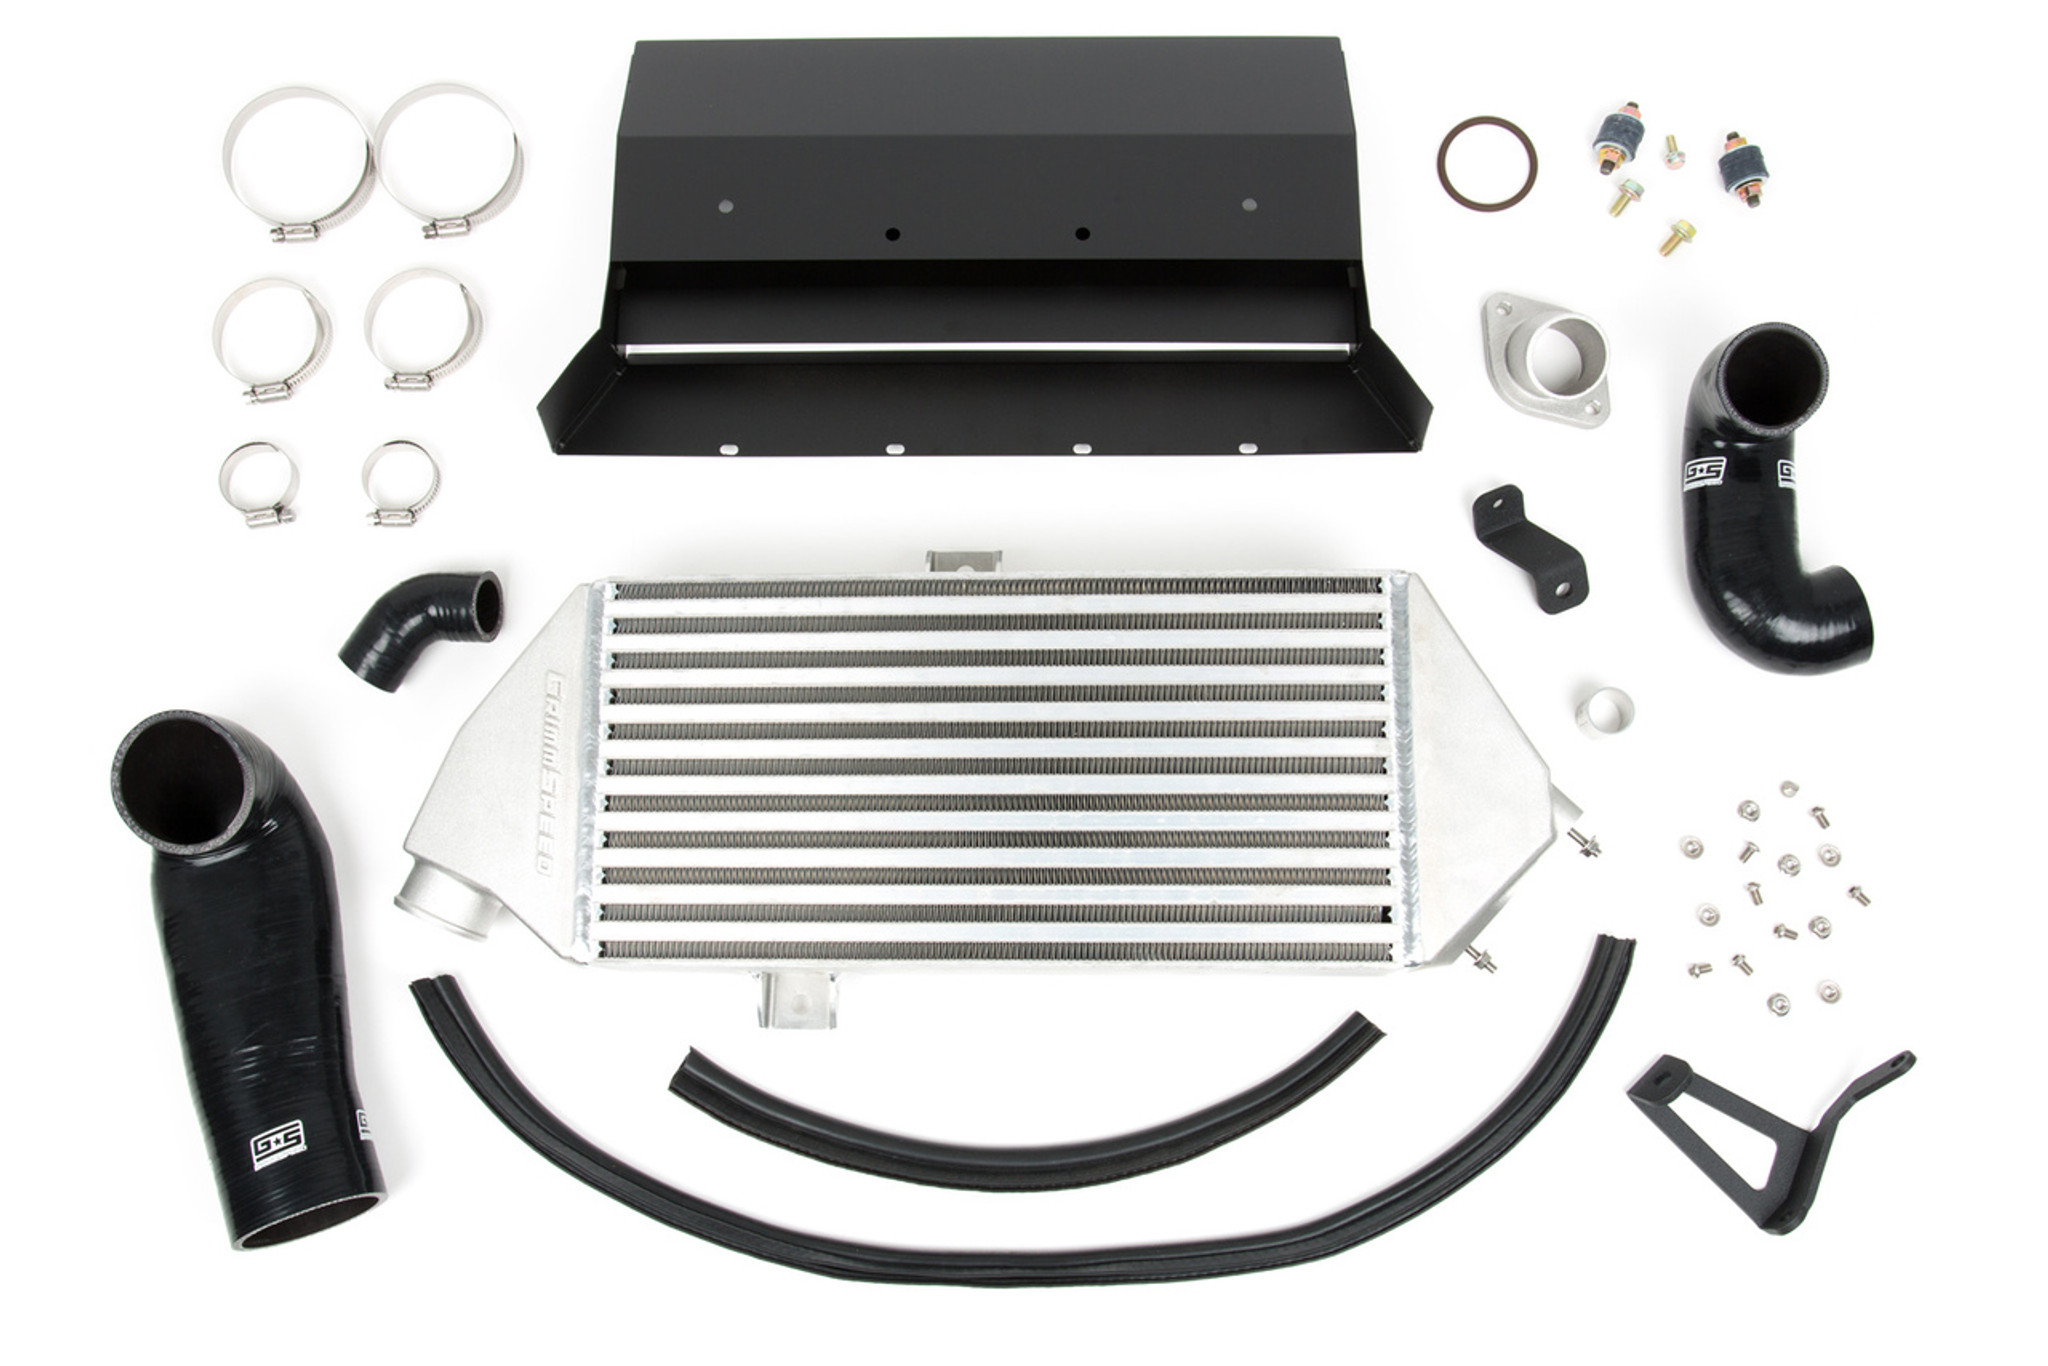 top mount intercooler kit subaru 08 14 wrx 05 09 legacy gt diagram of 05 subaru legacy gt engine [ 2048 x 1366 Pixel ]